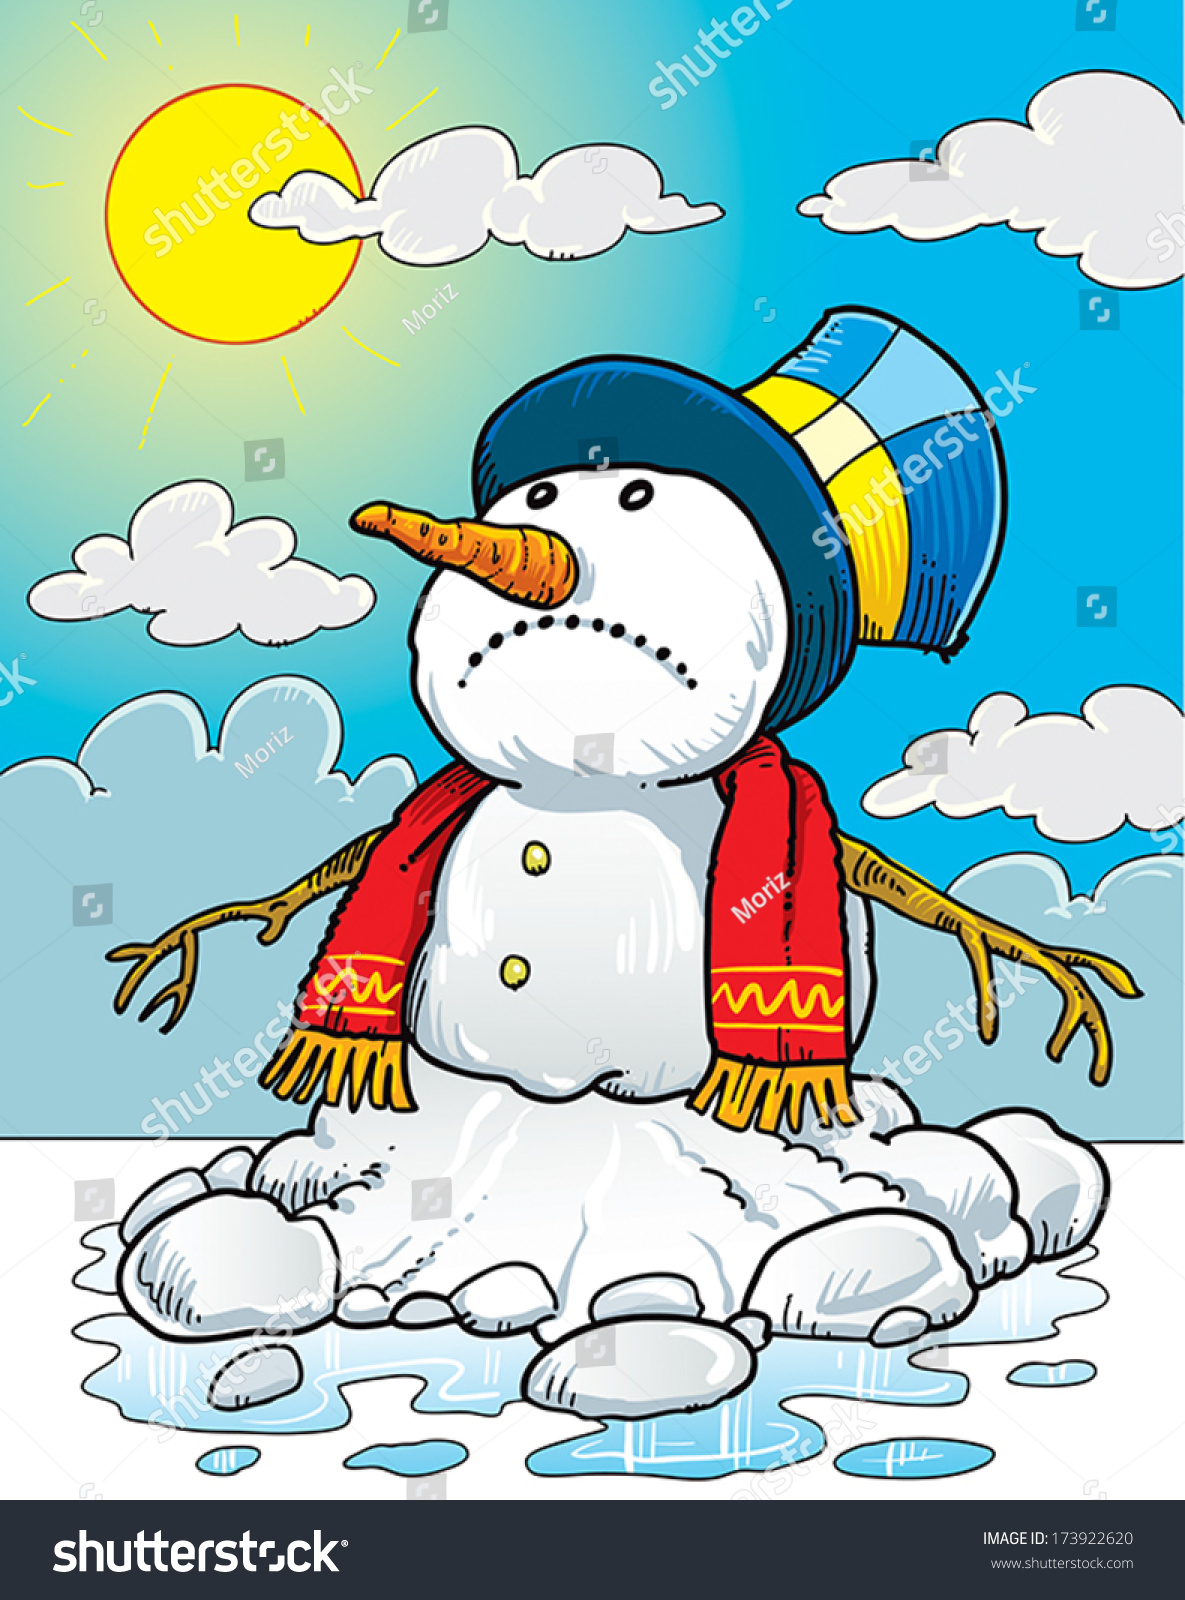 Snowman Melting On Sun Stock Vector 173922620 - Shutterstock